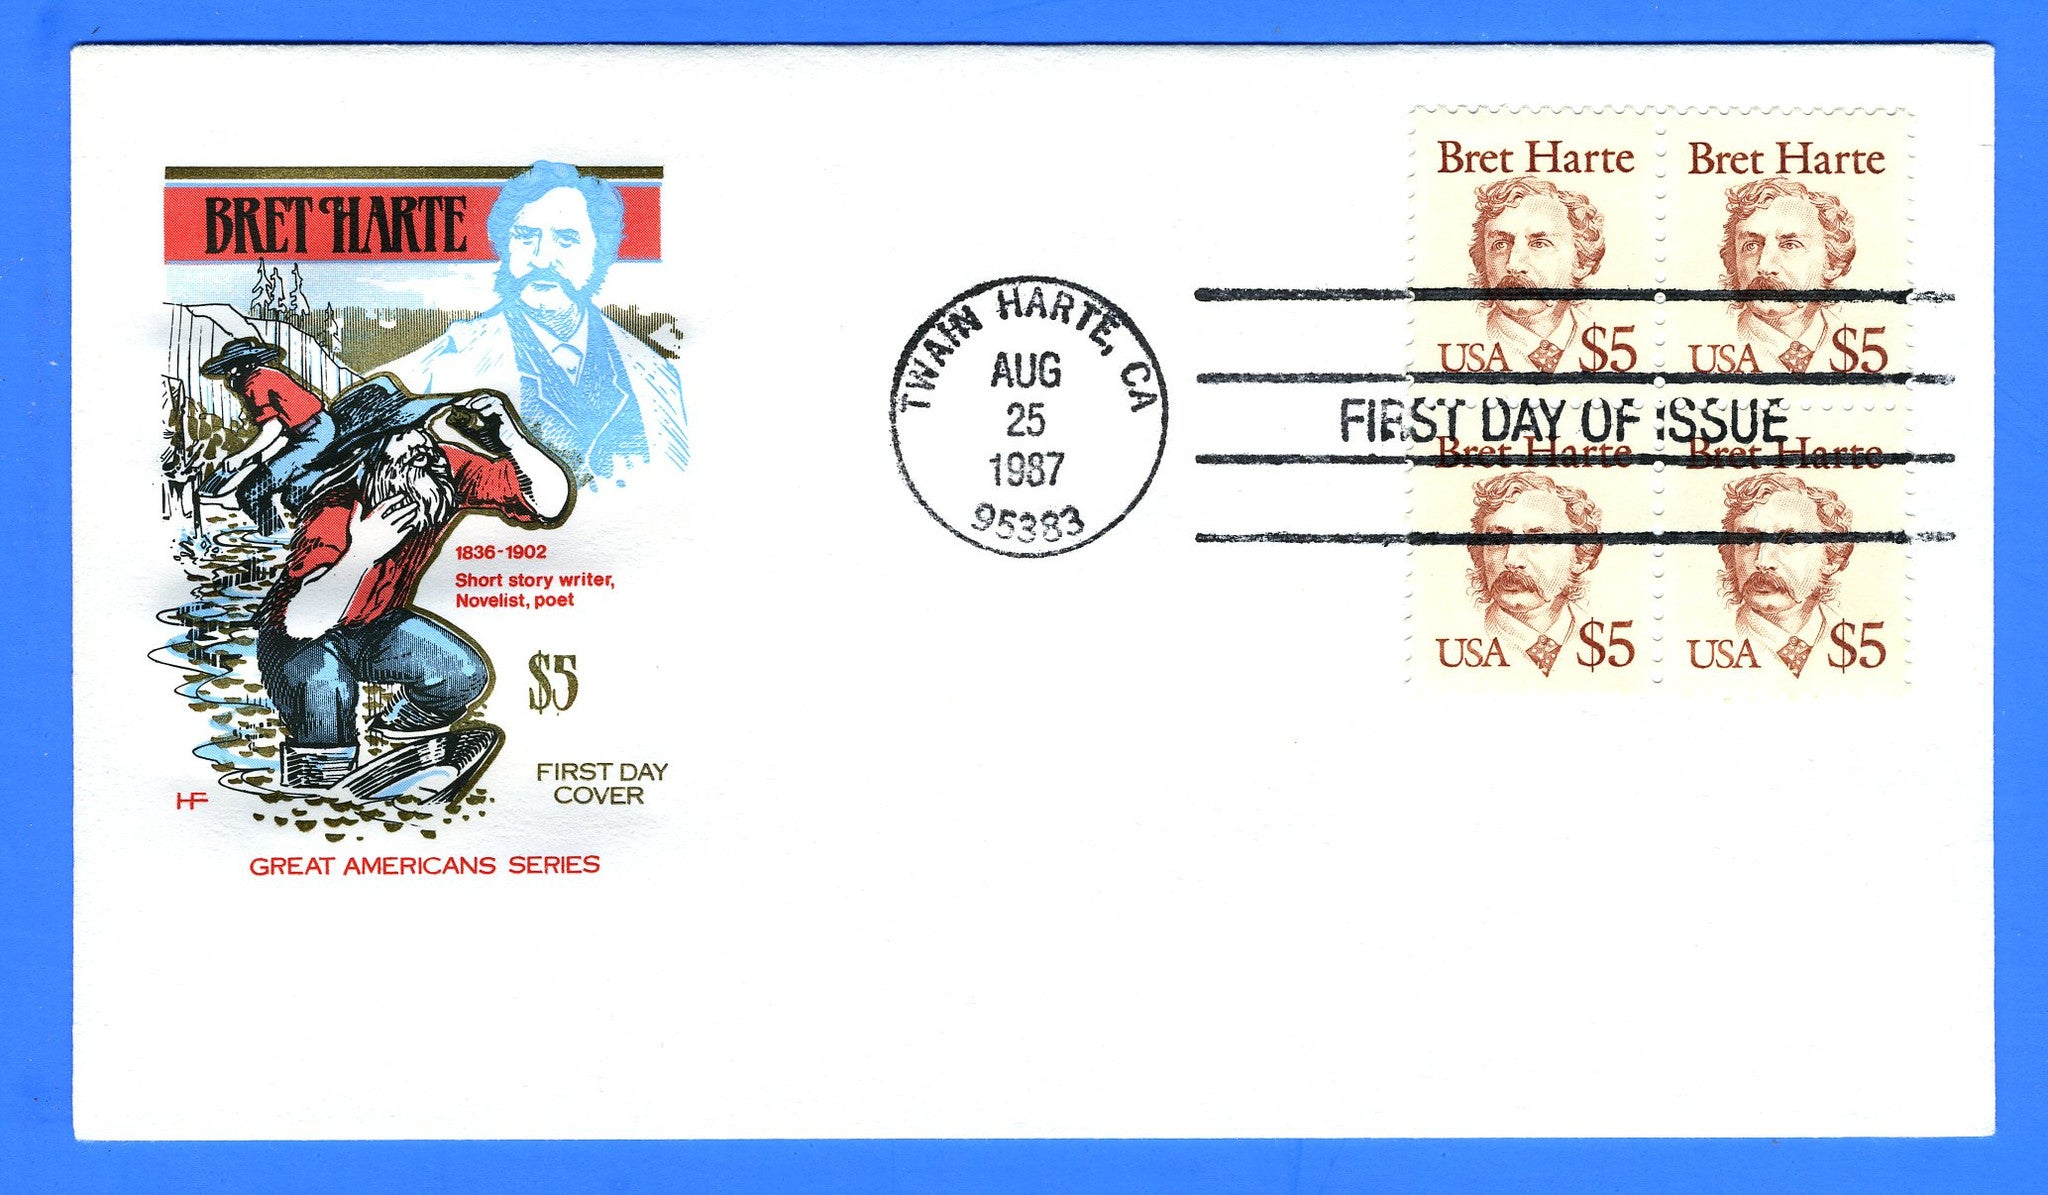 Scott 2196 $5 Bret Harte First Day Cover by House of Farnum - Block of 4